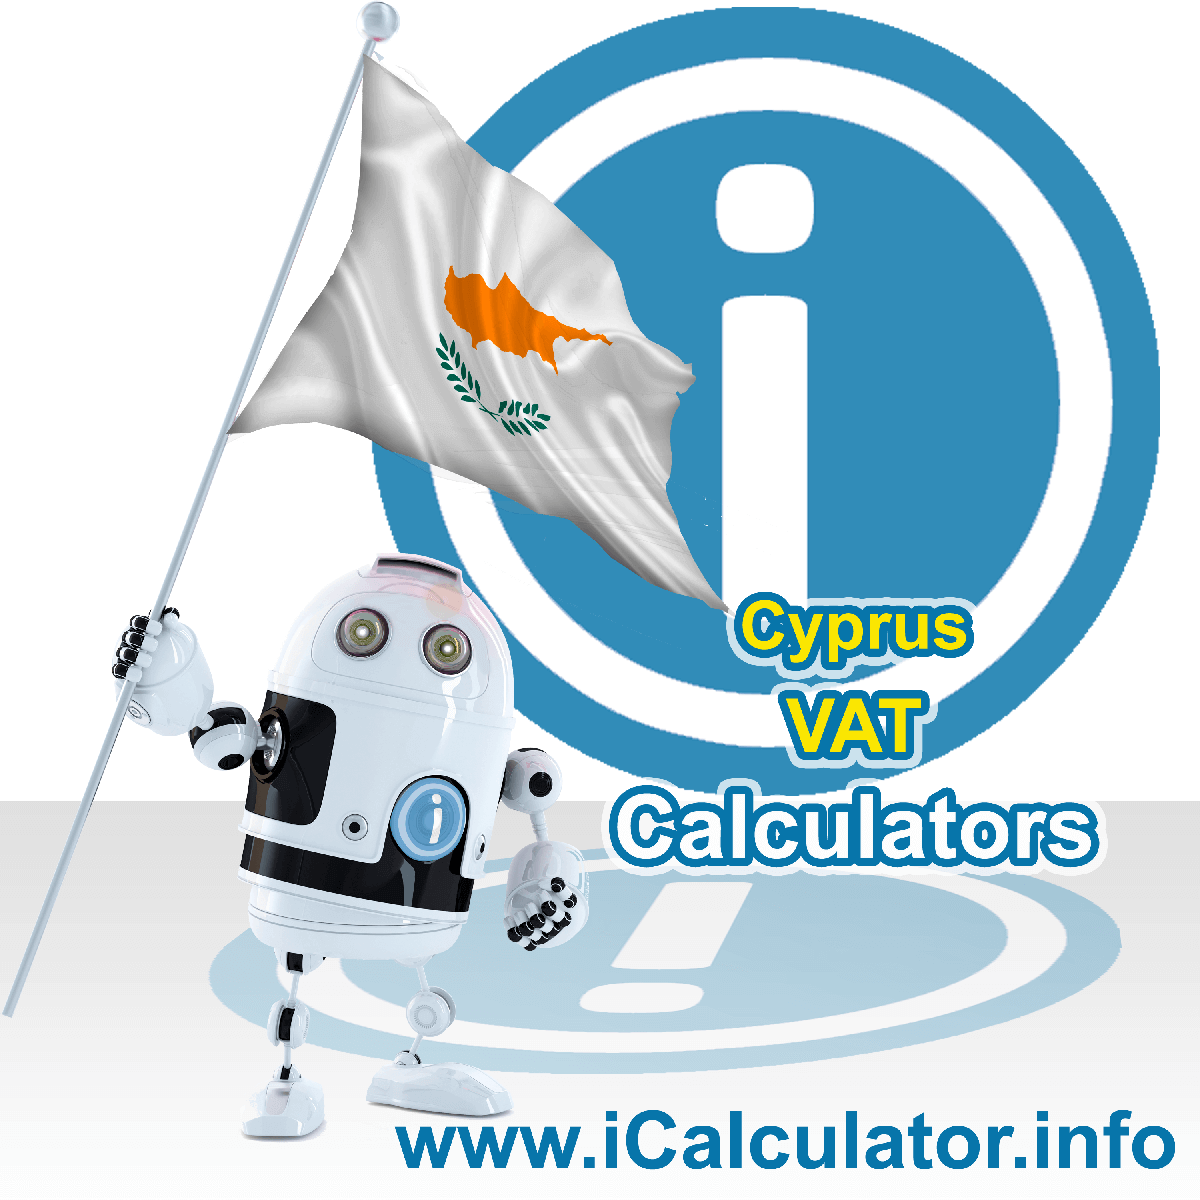 Cyprus VAT Calculator. This image shows the Cyprus flag and information relating to the VAT formula used for calculating Value Added Tax in Cyprus using the Cyprus VAT Calculator in 2020